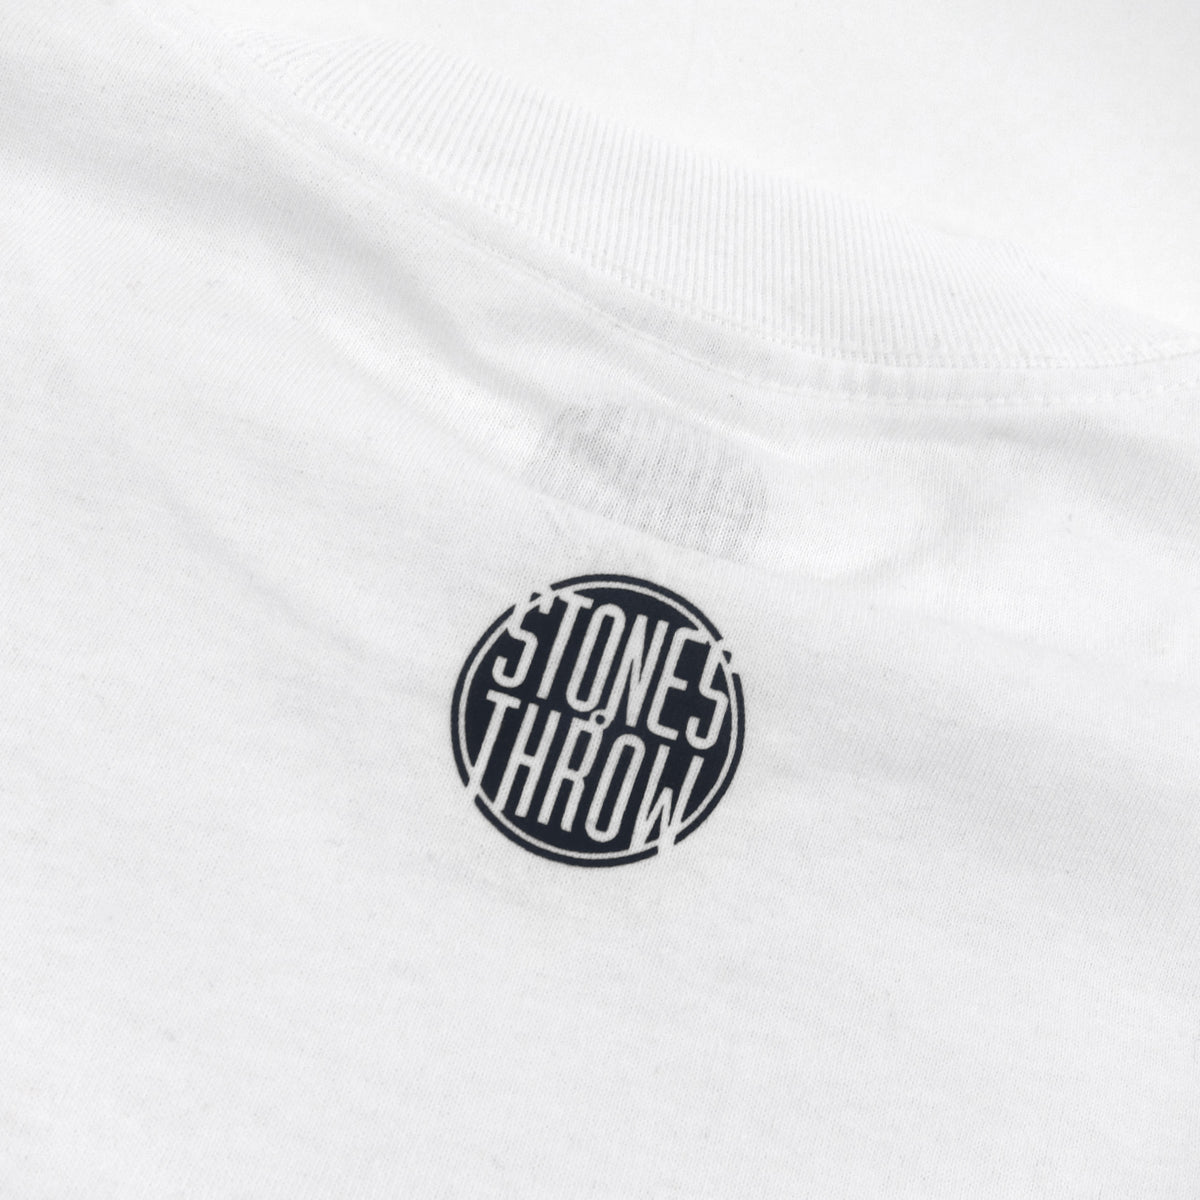 Stones Throw: Dilla Donuts Stencil Shirt - White / Black